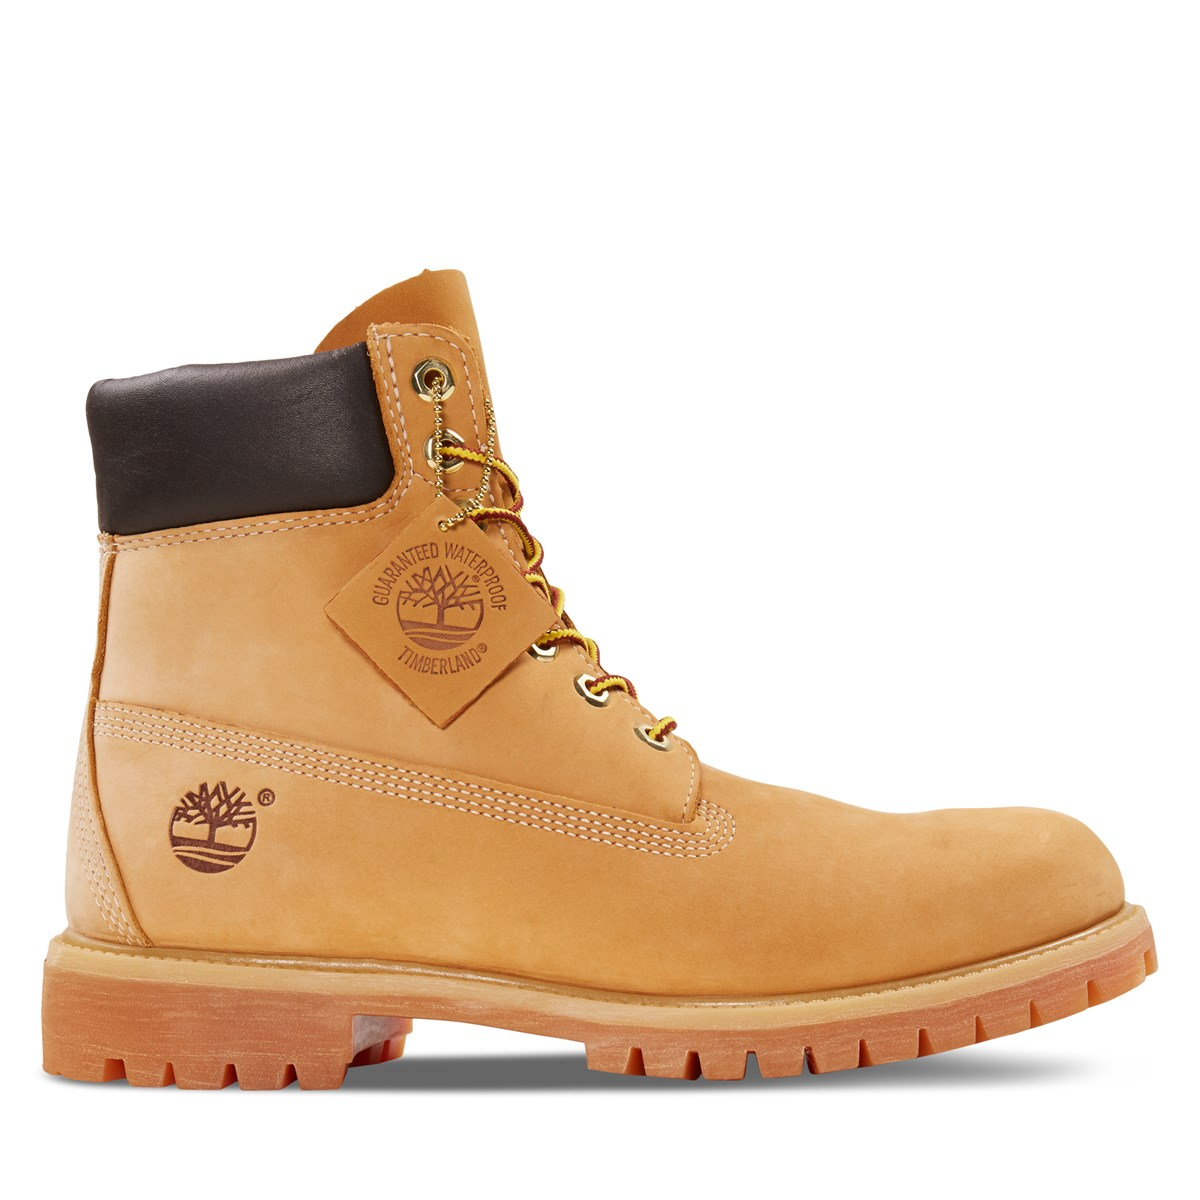 Men's 6 Premium Waterproof Boots in Camel